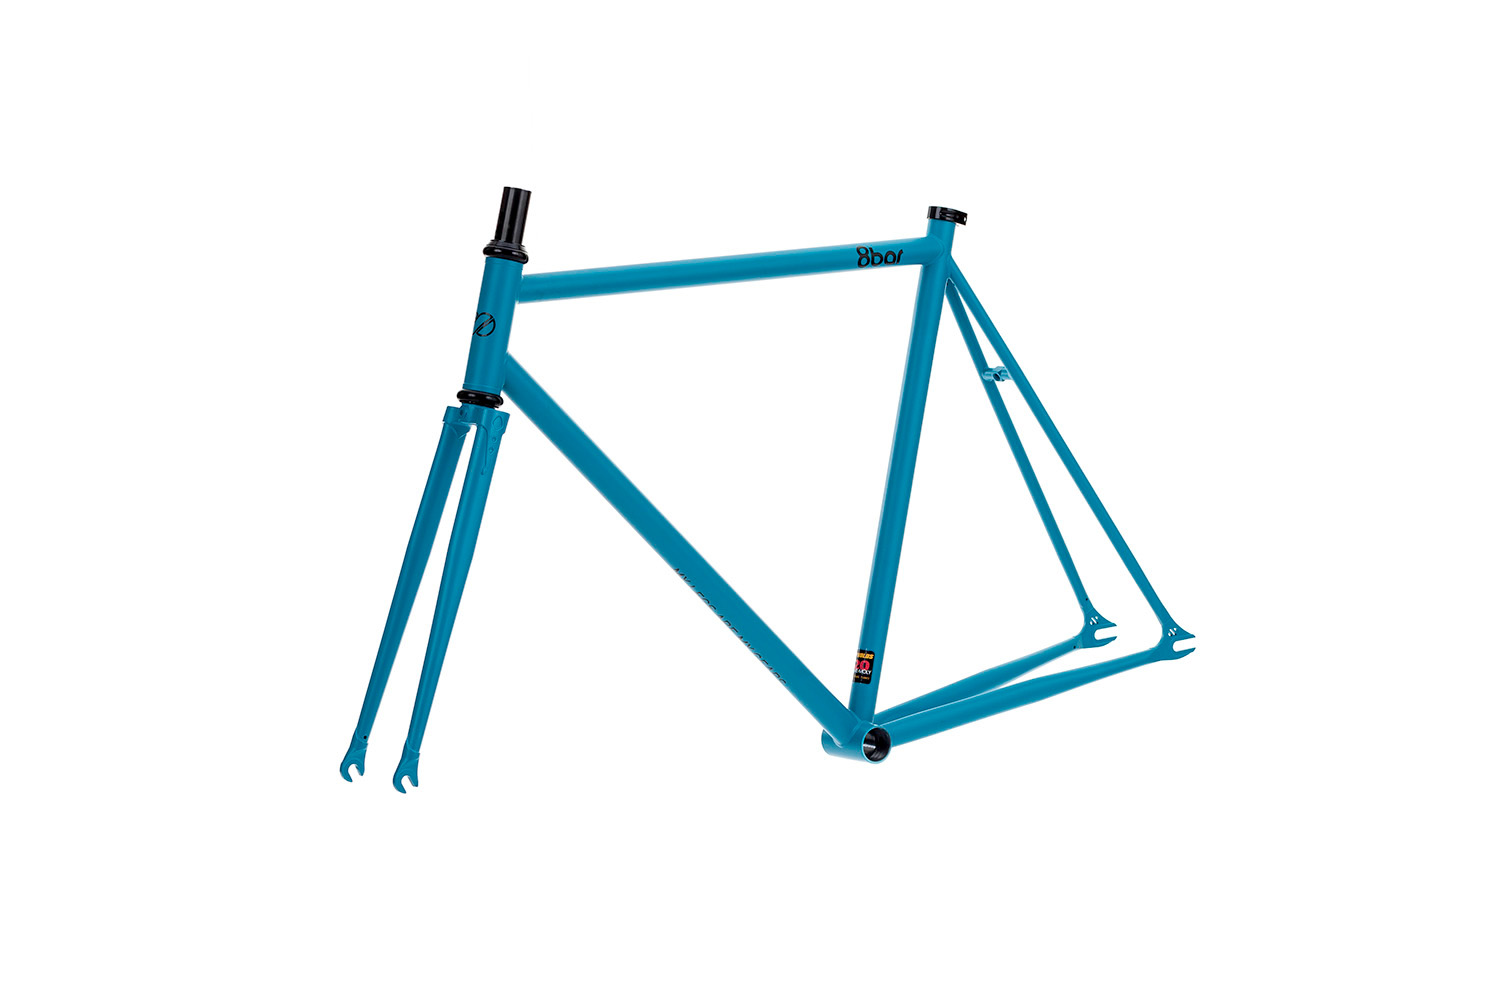 8bar-bikes-neukln-petrol-blue-fixie-fixed-gear-berlin-0001